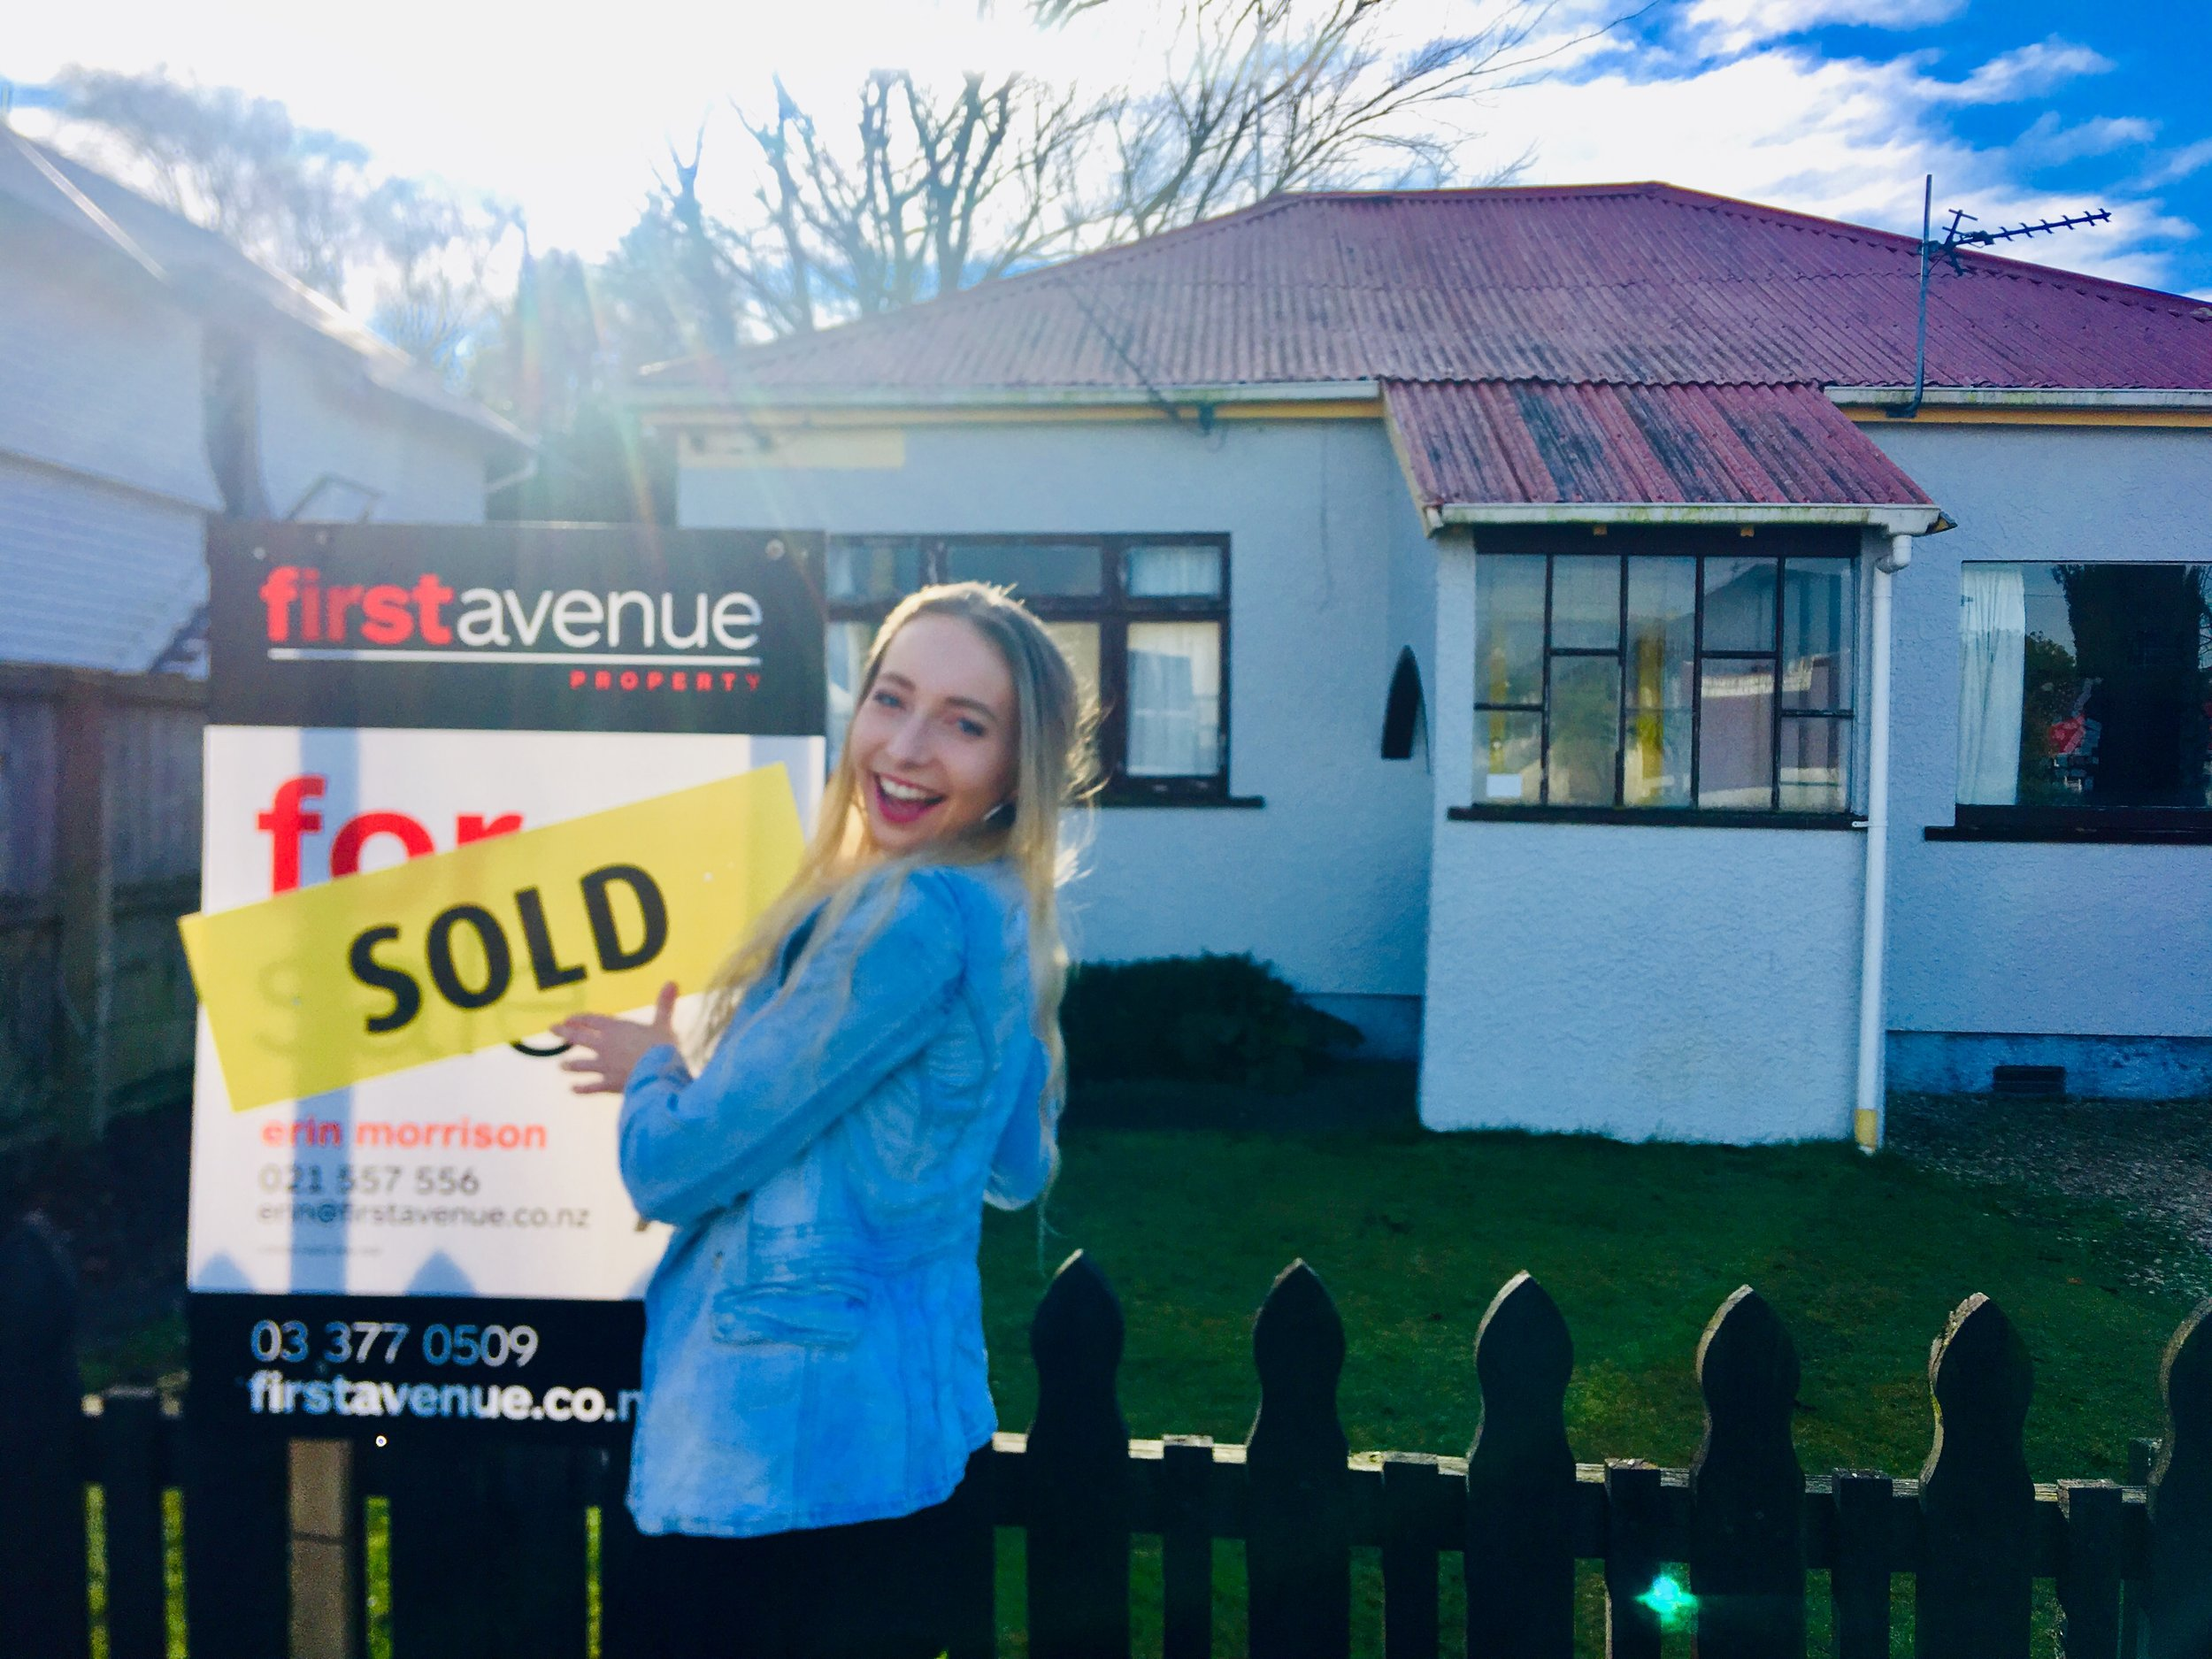 Listen to first time buyers who have just bought and hear their real life experiences…